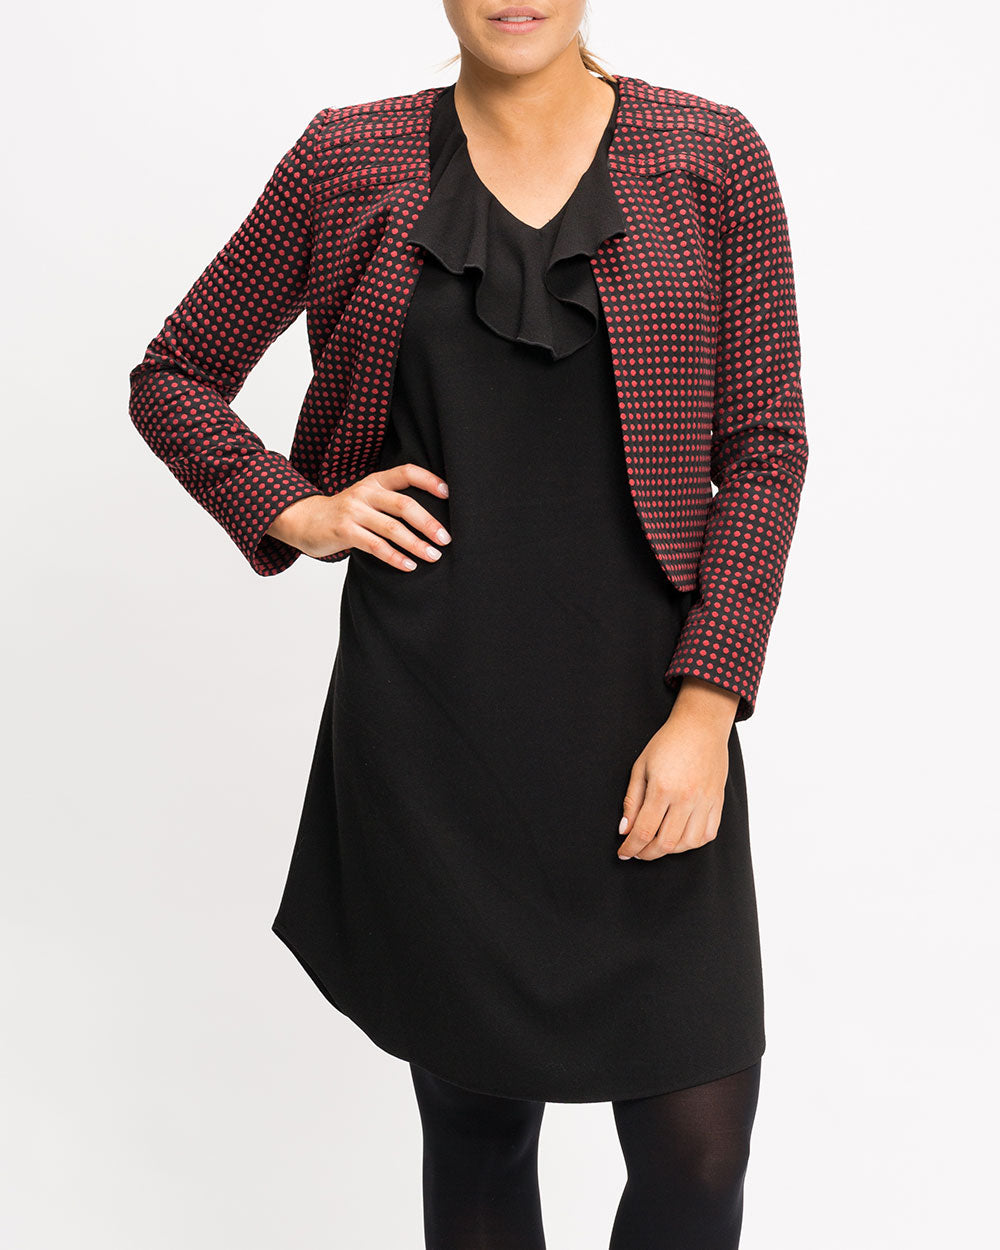 Arki Bell Sleeve Shift Dress - Black Crepe